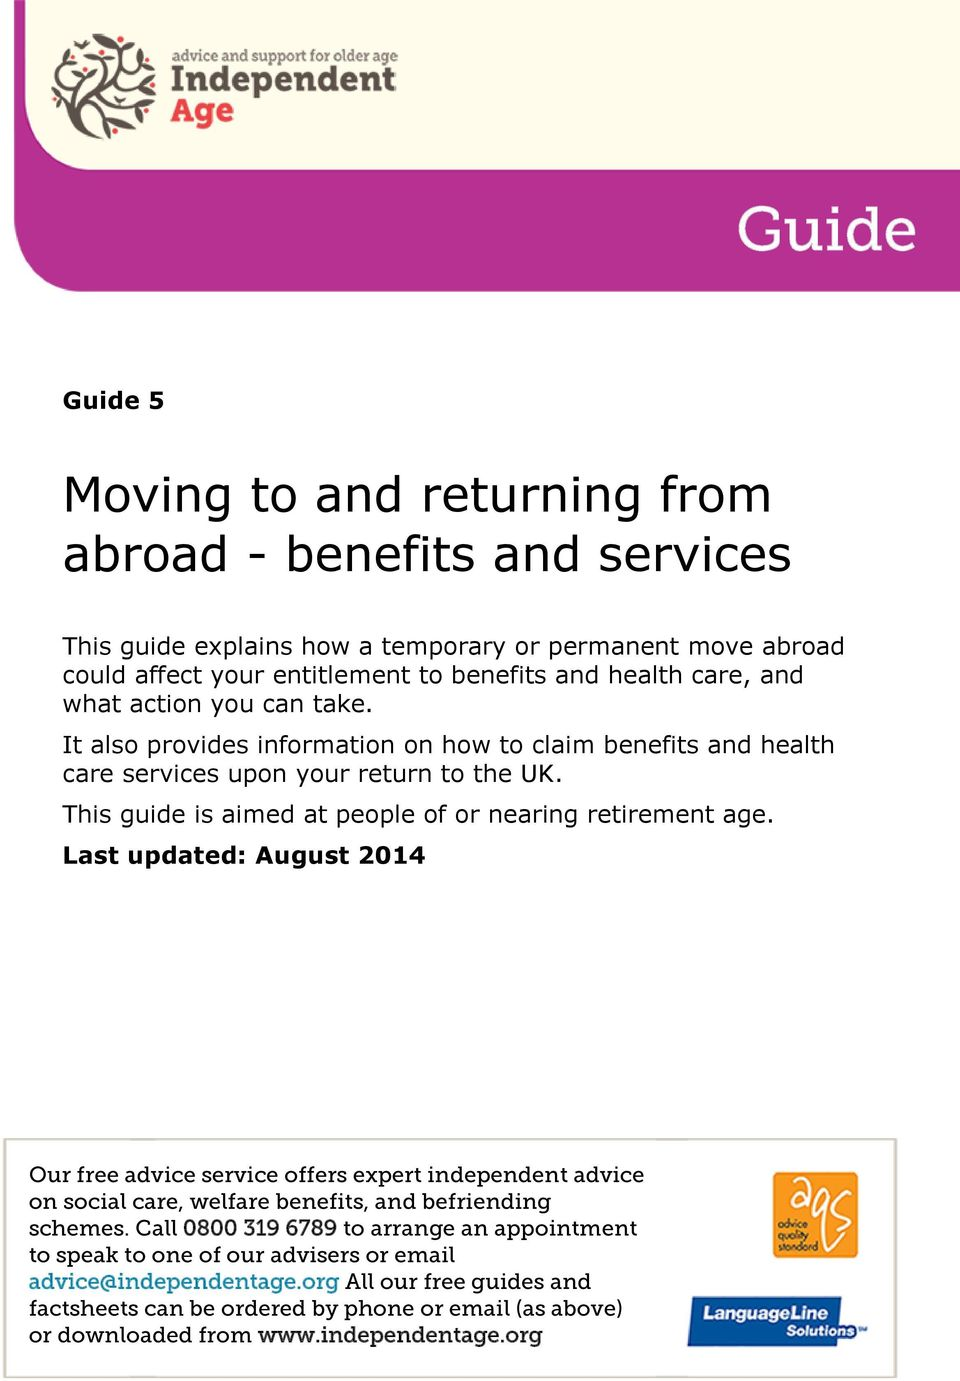 This guide is aimed at people of or nearing retirement age.